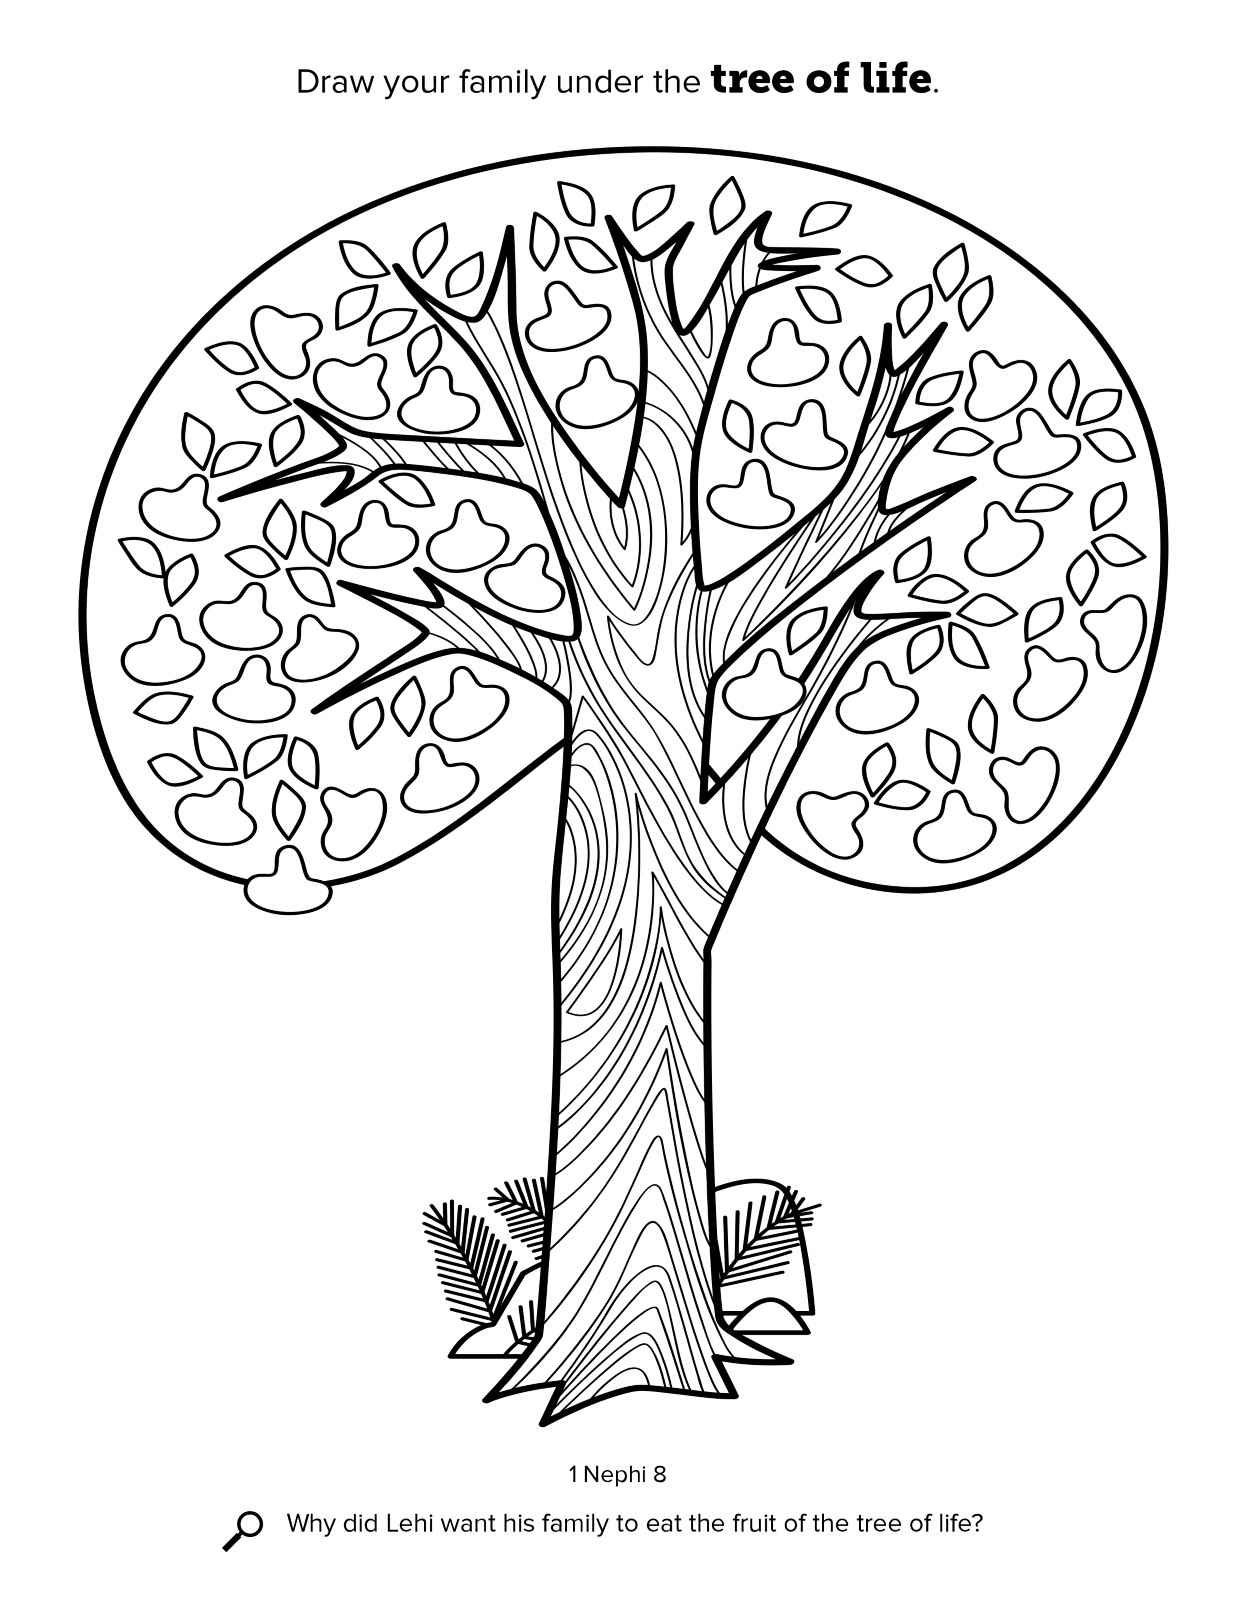 Book of life for coloring - Share